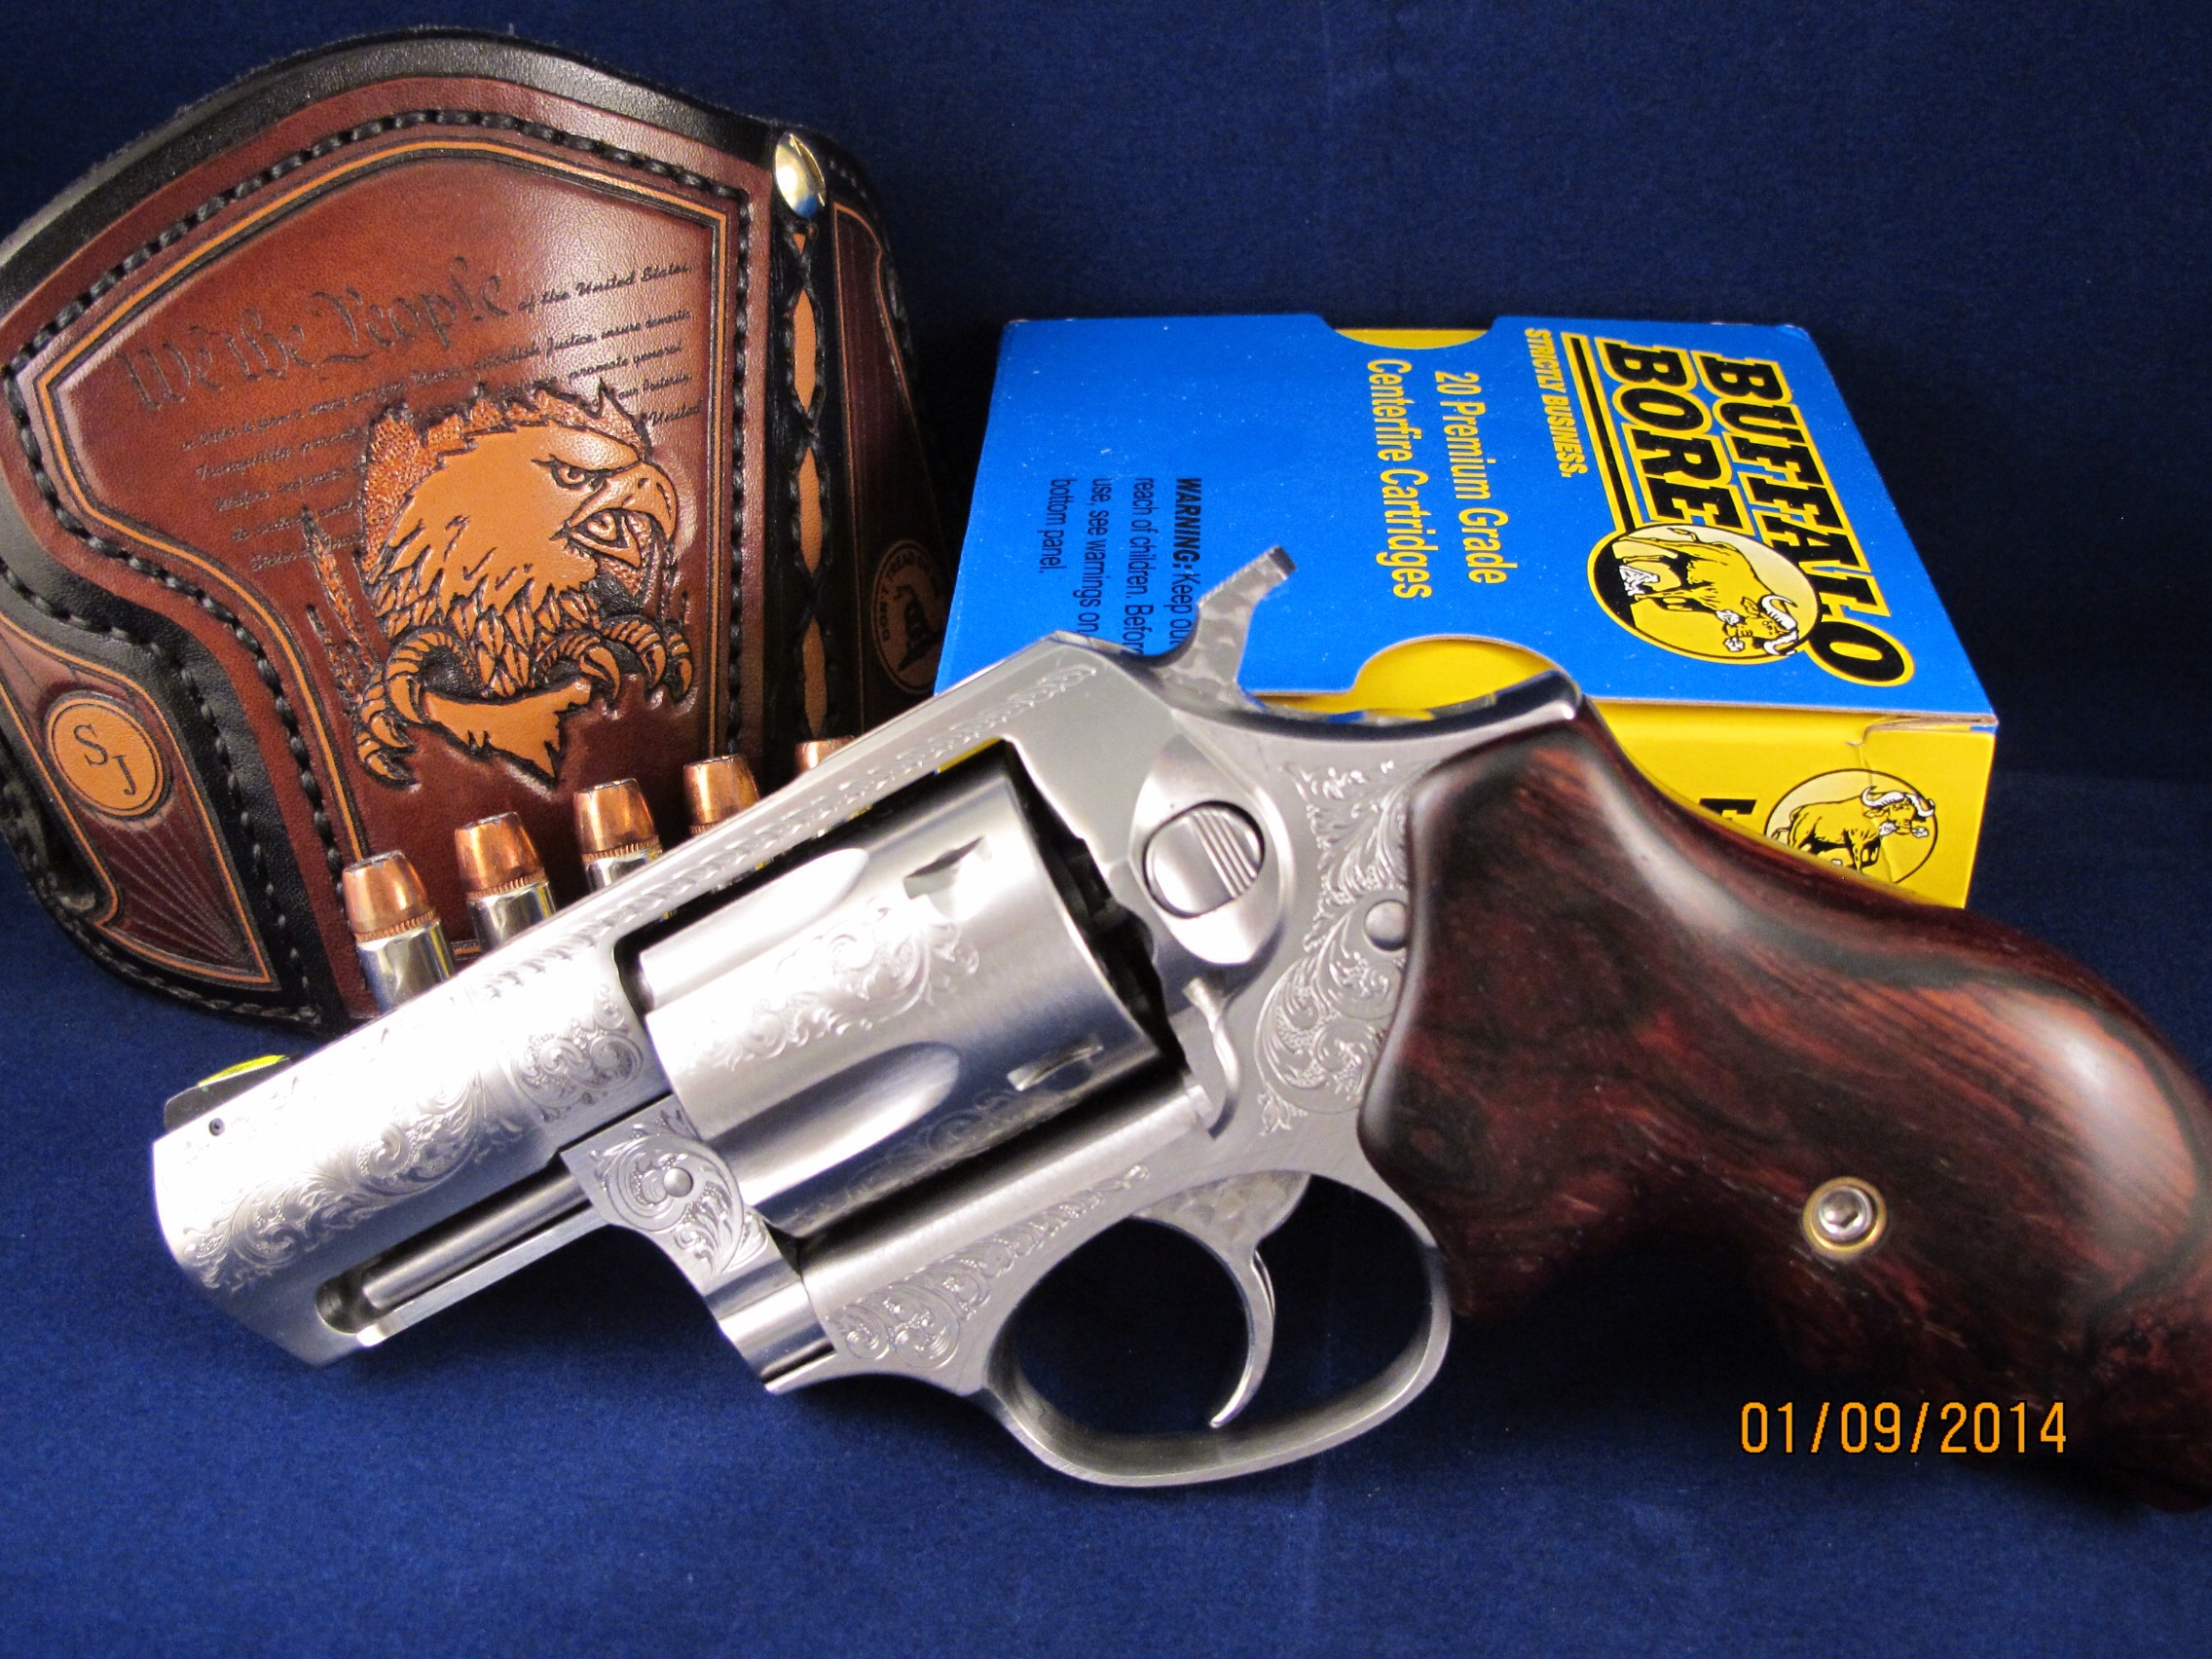 .357 magnum out of a snub nose - not worth it?-image.jpg